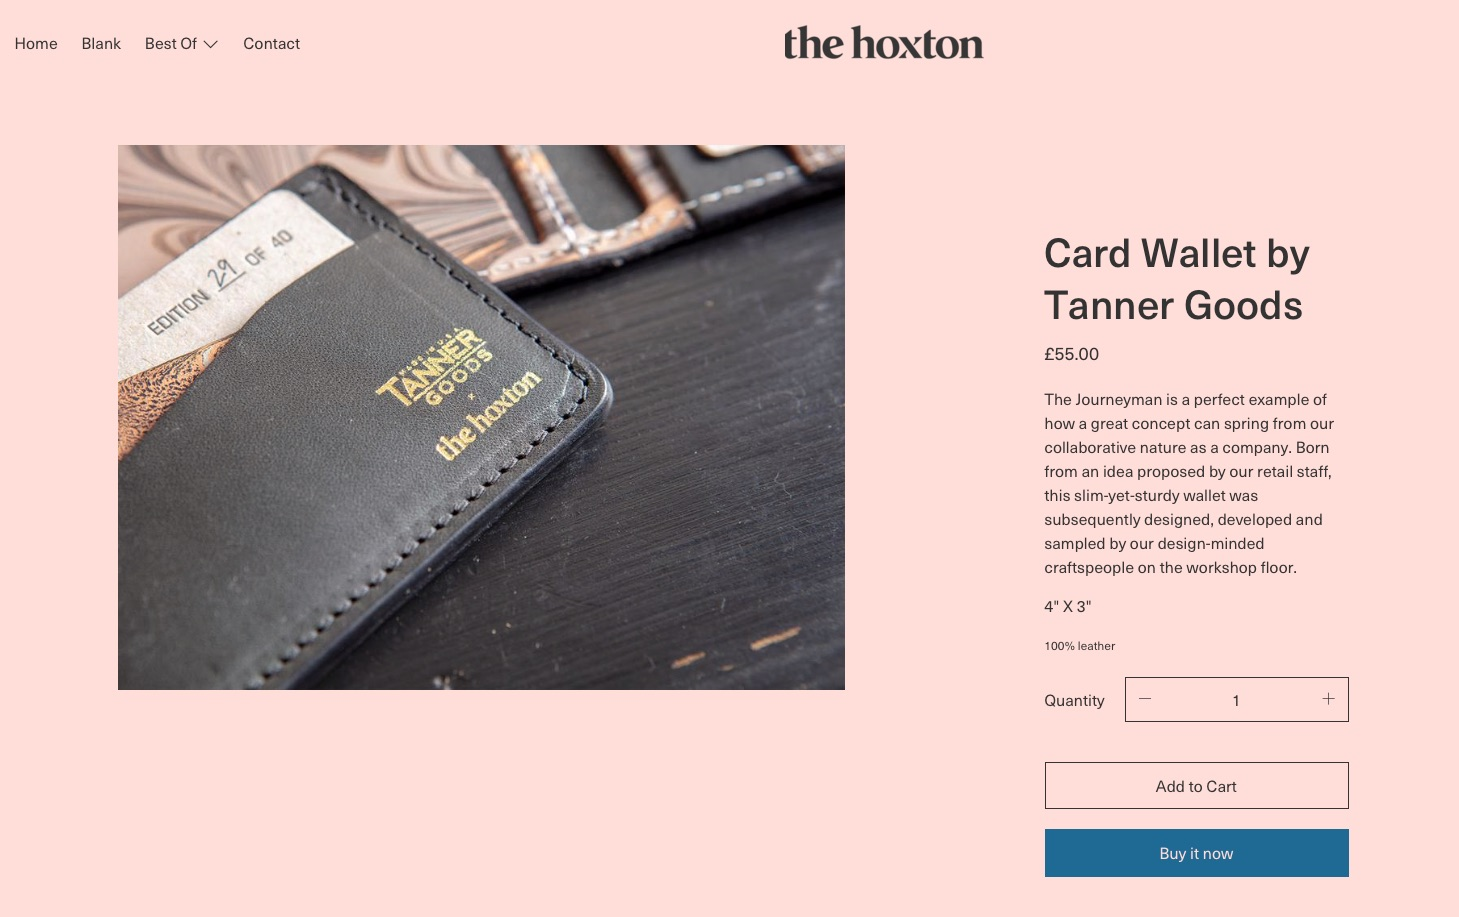 Card_Wallet_by_Tanner_Goods_–_Hox_Shop.jpg